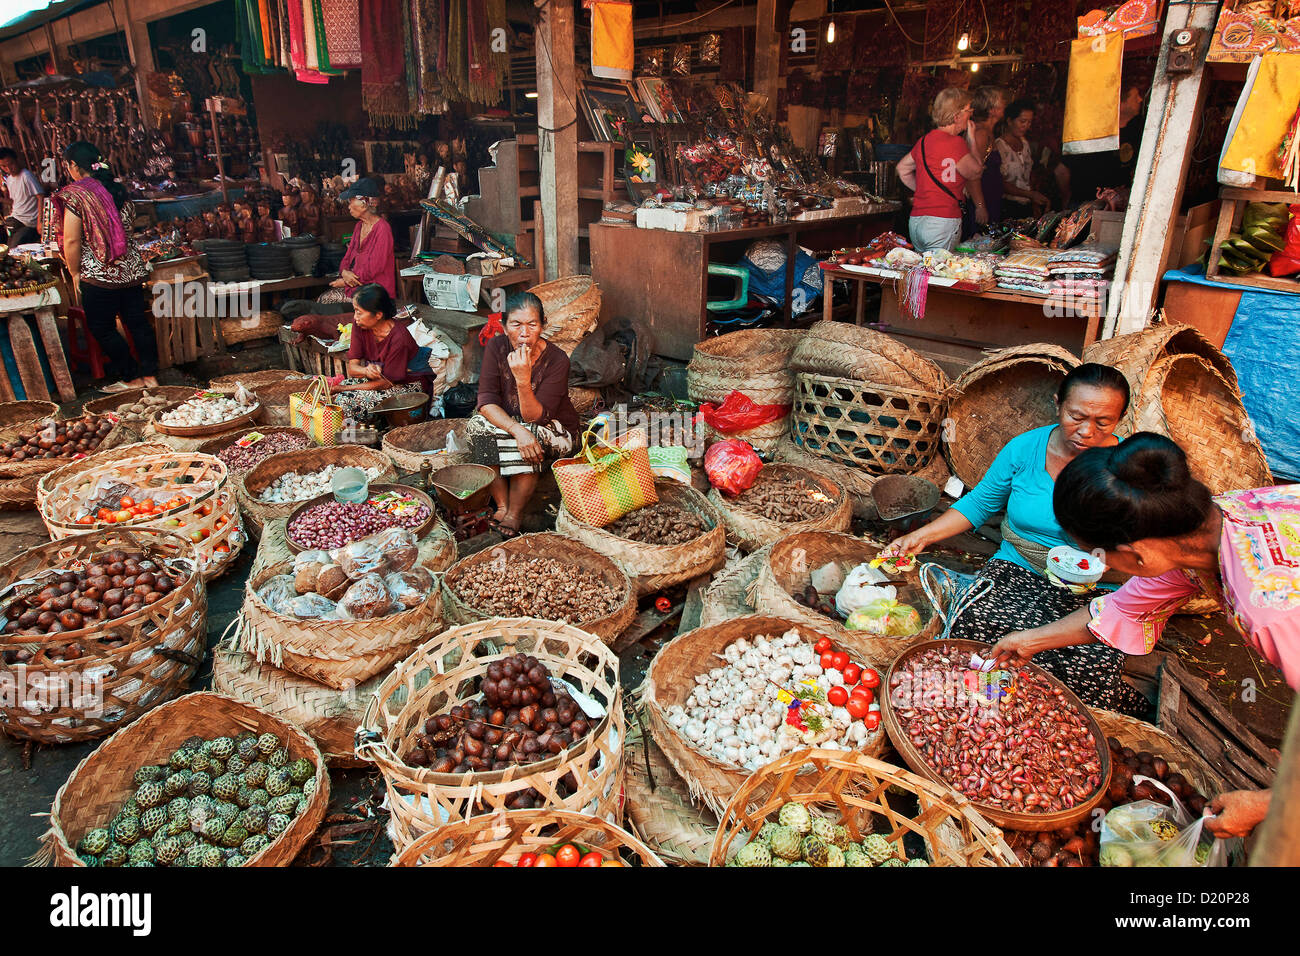 Indonesia Spices Stock Photos & Indonesia Spices Stock Images - Alamy